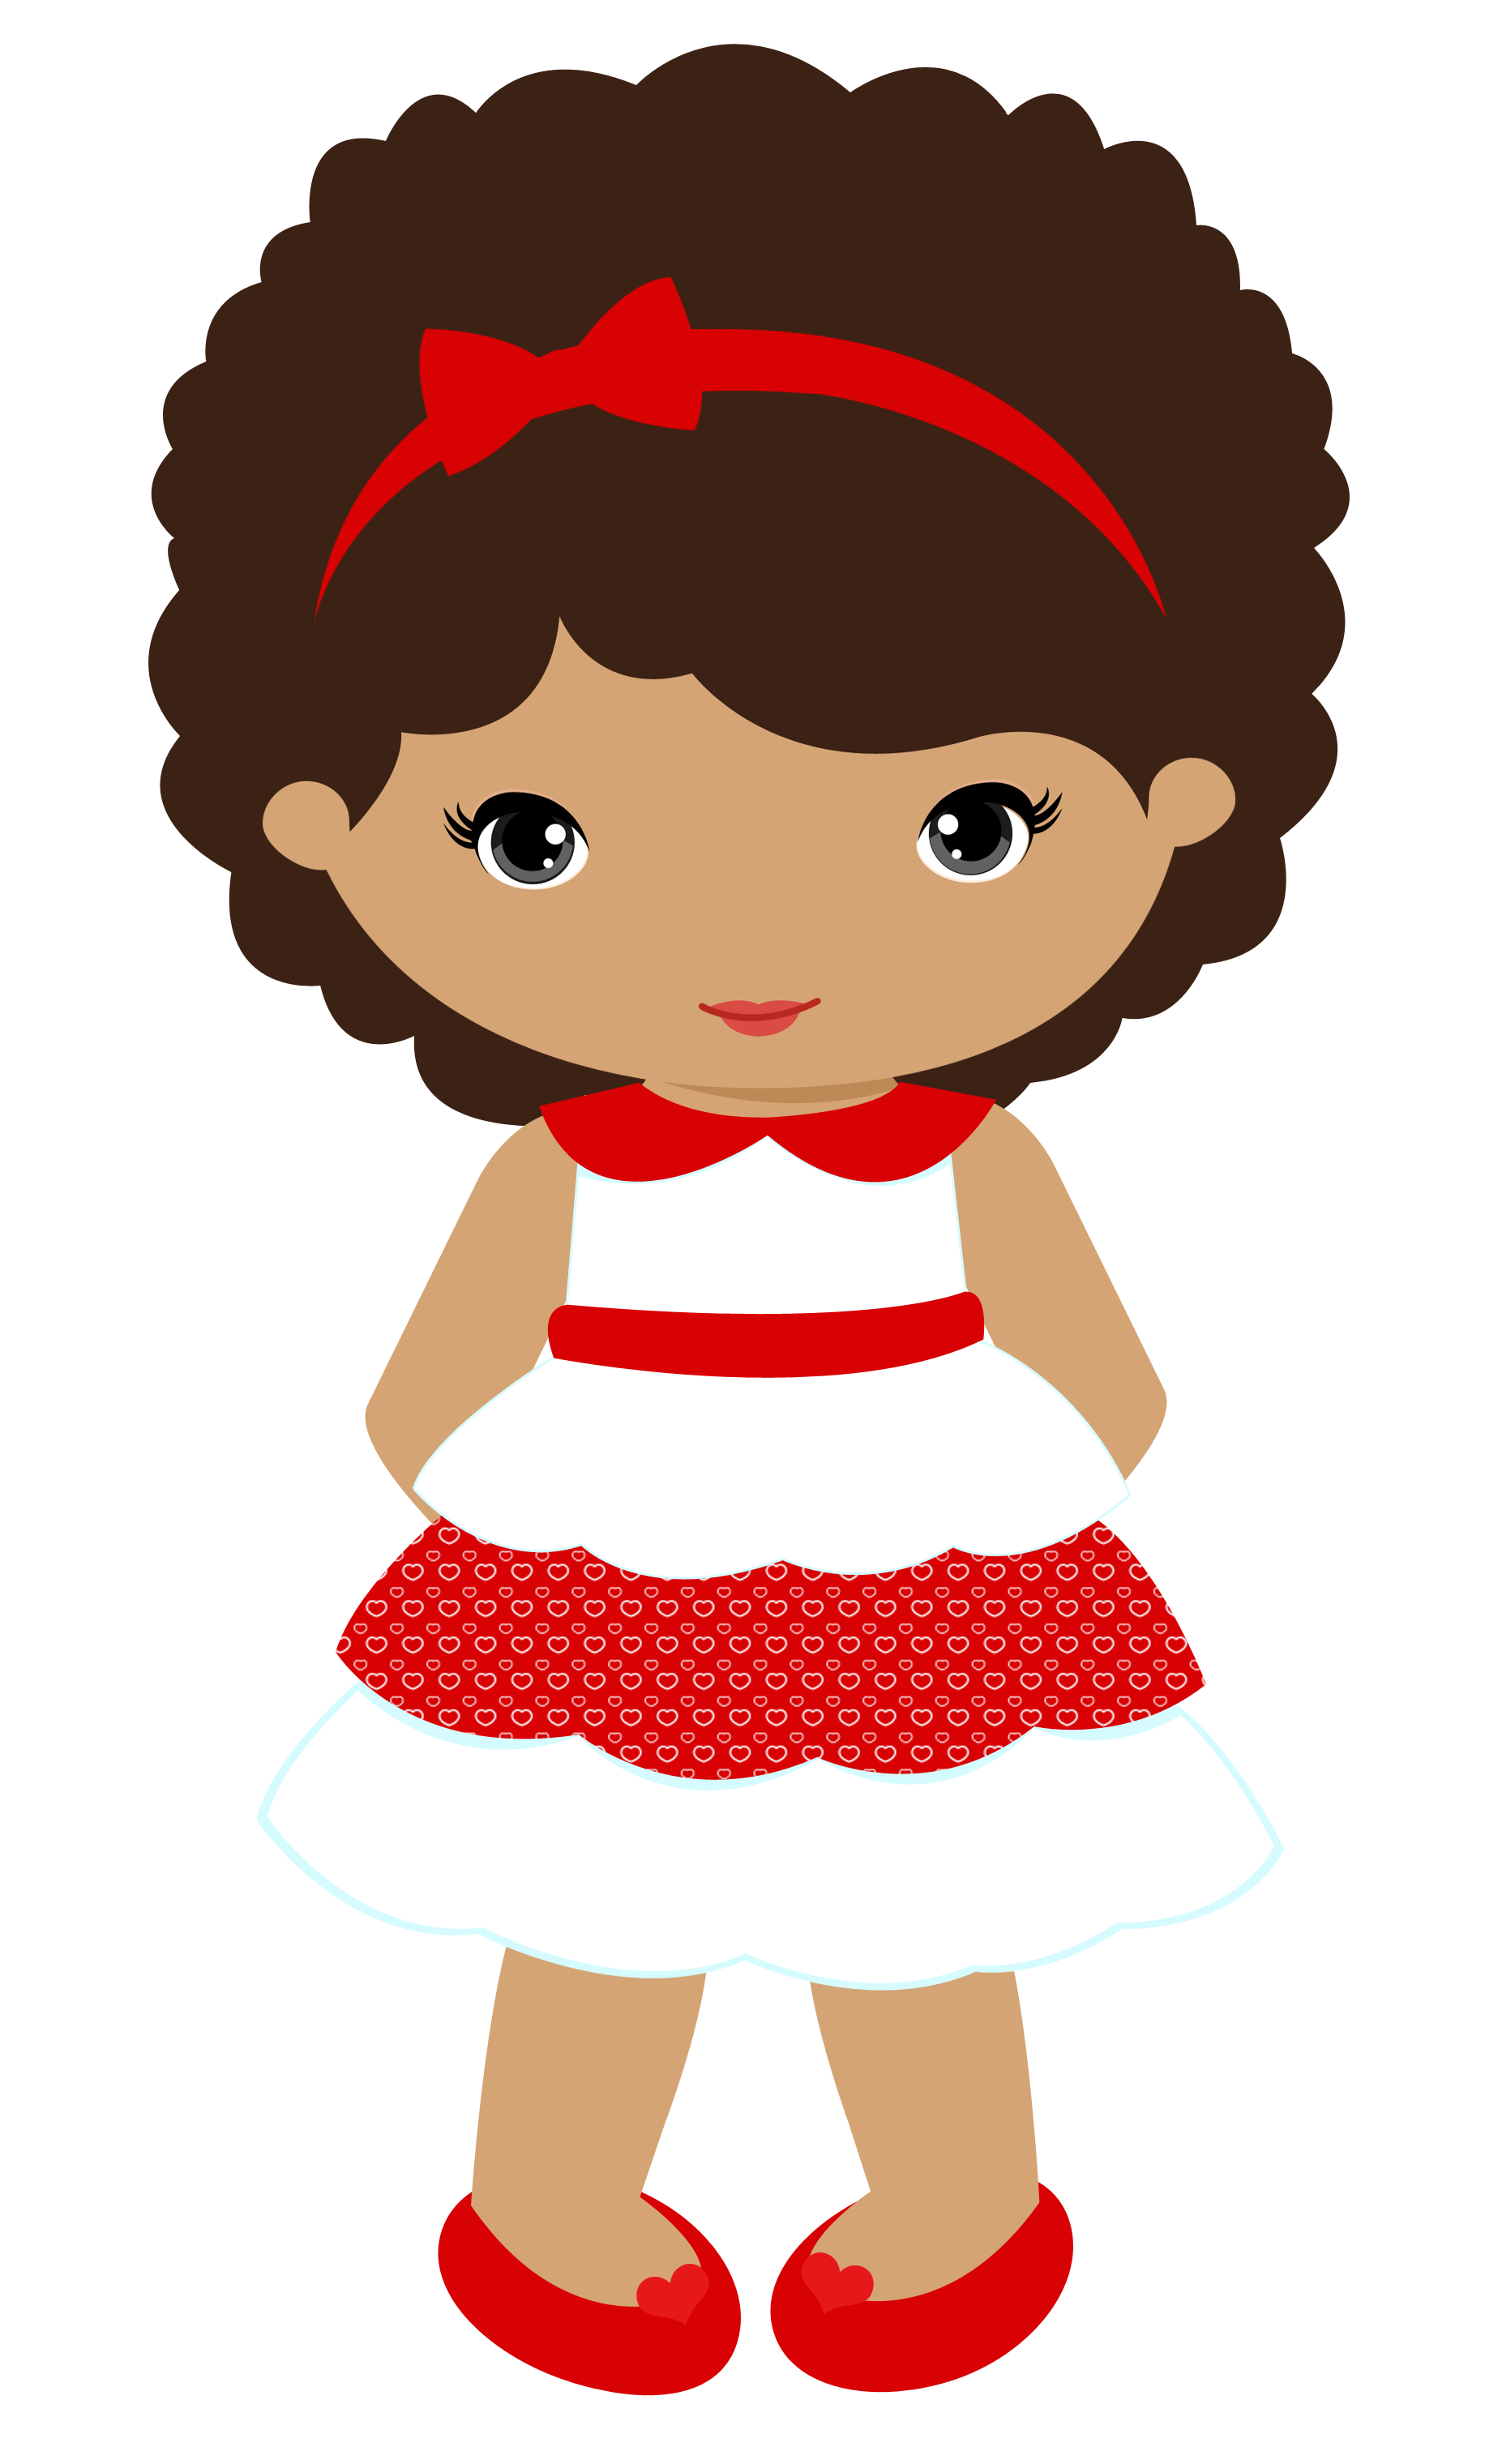 Planet clipart drawn. Barbie doll png free